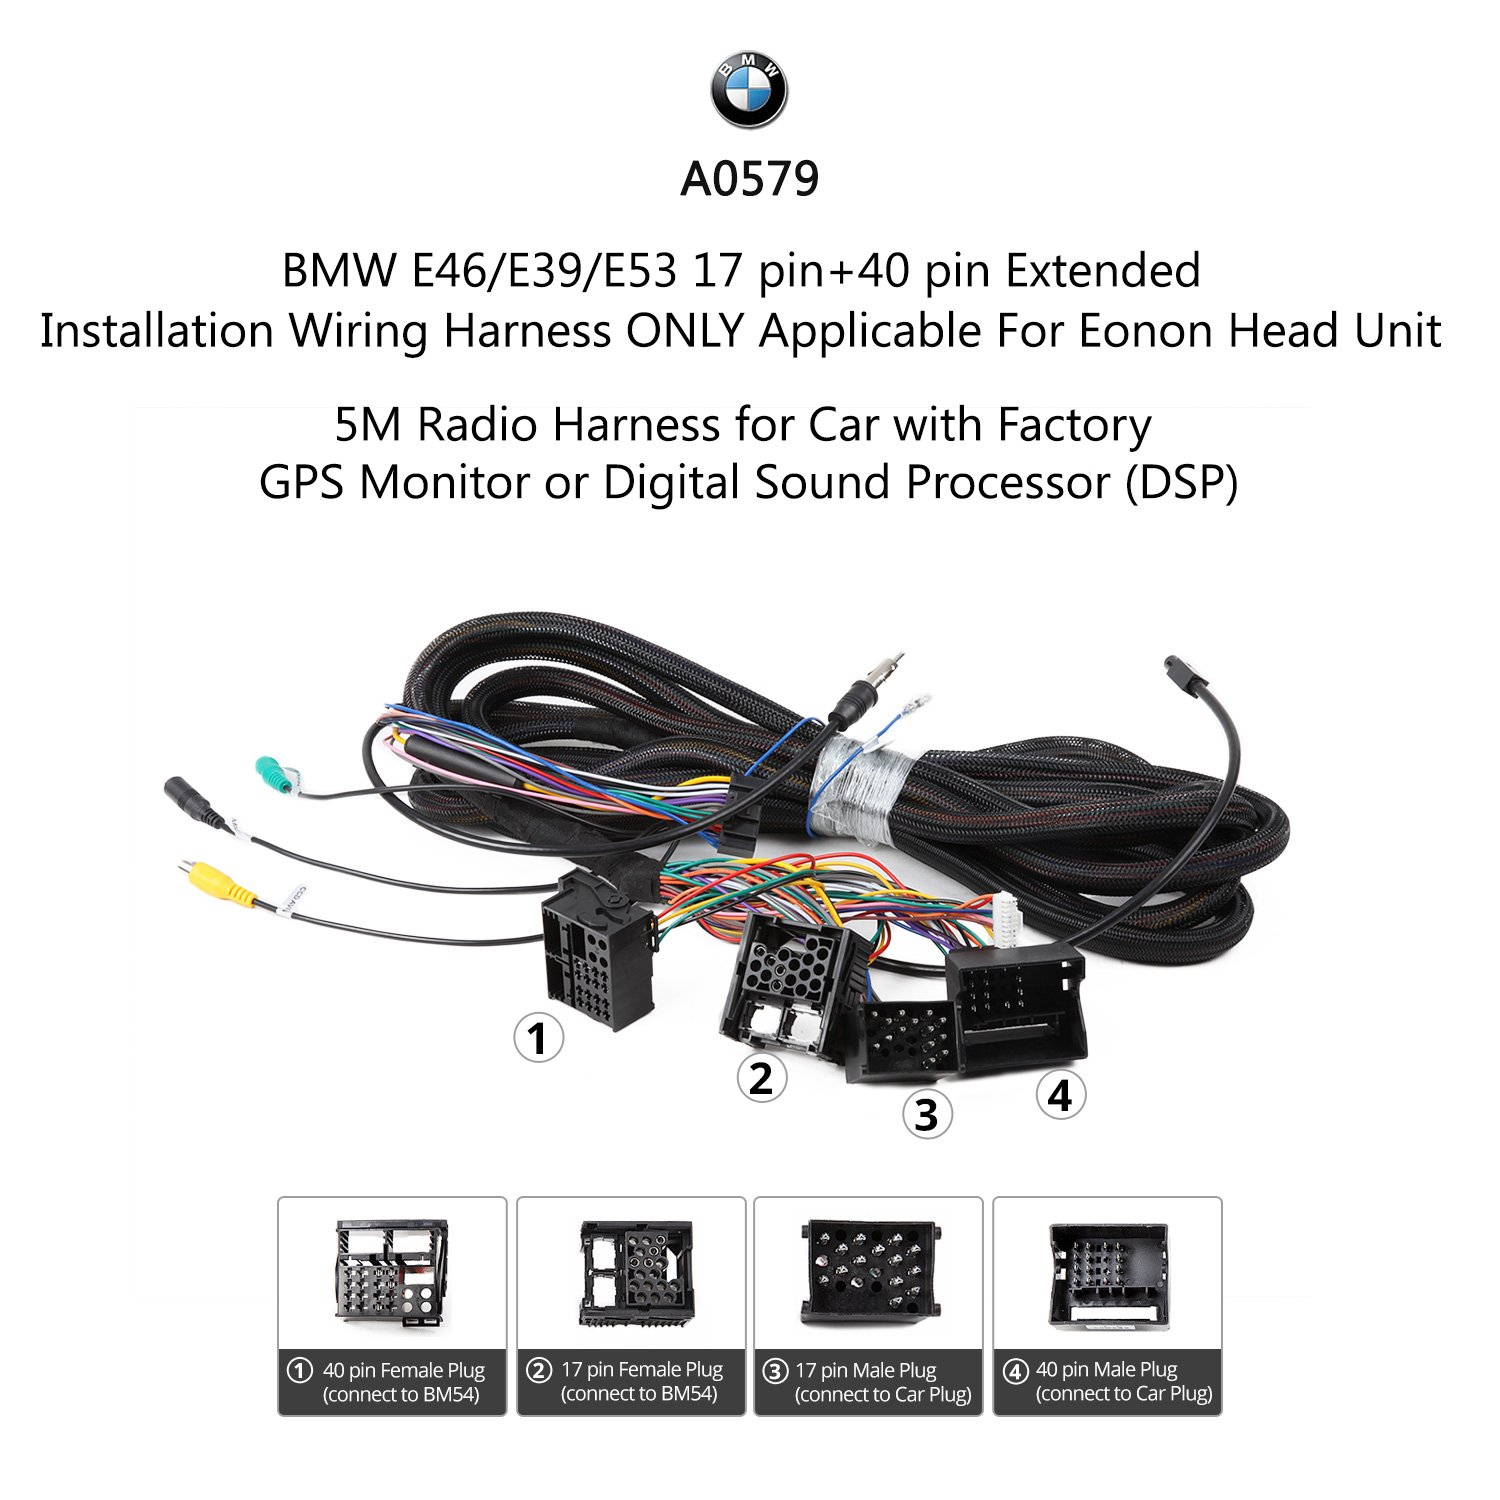 Amazon.com: Eonon A0579 BMW E46/E39/E53 17 Pin + 40 Pin Extended  Installation Wiring Harness for  GA6150/GA6166/GA6201/GA7150/GA7166/GA7201/GA7150S ...